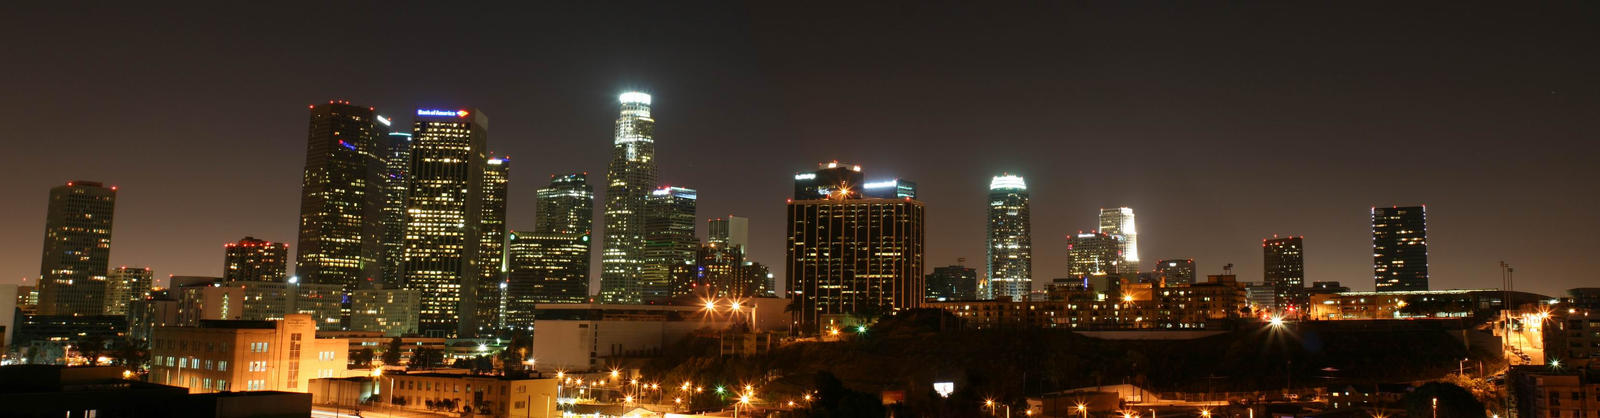 Downtown Los Angeles LA by ~gogafetish